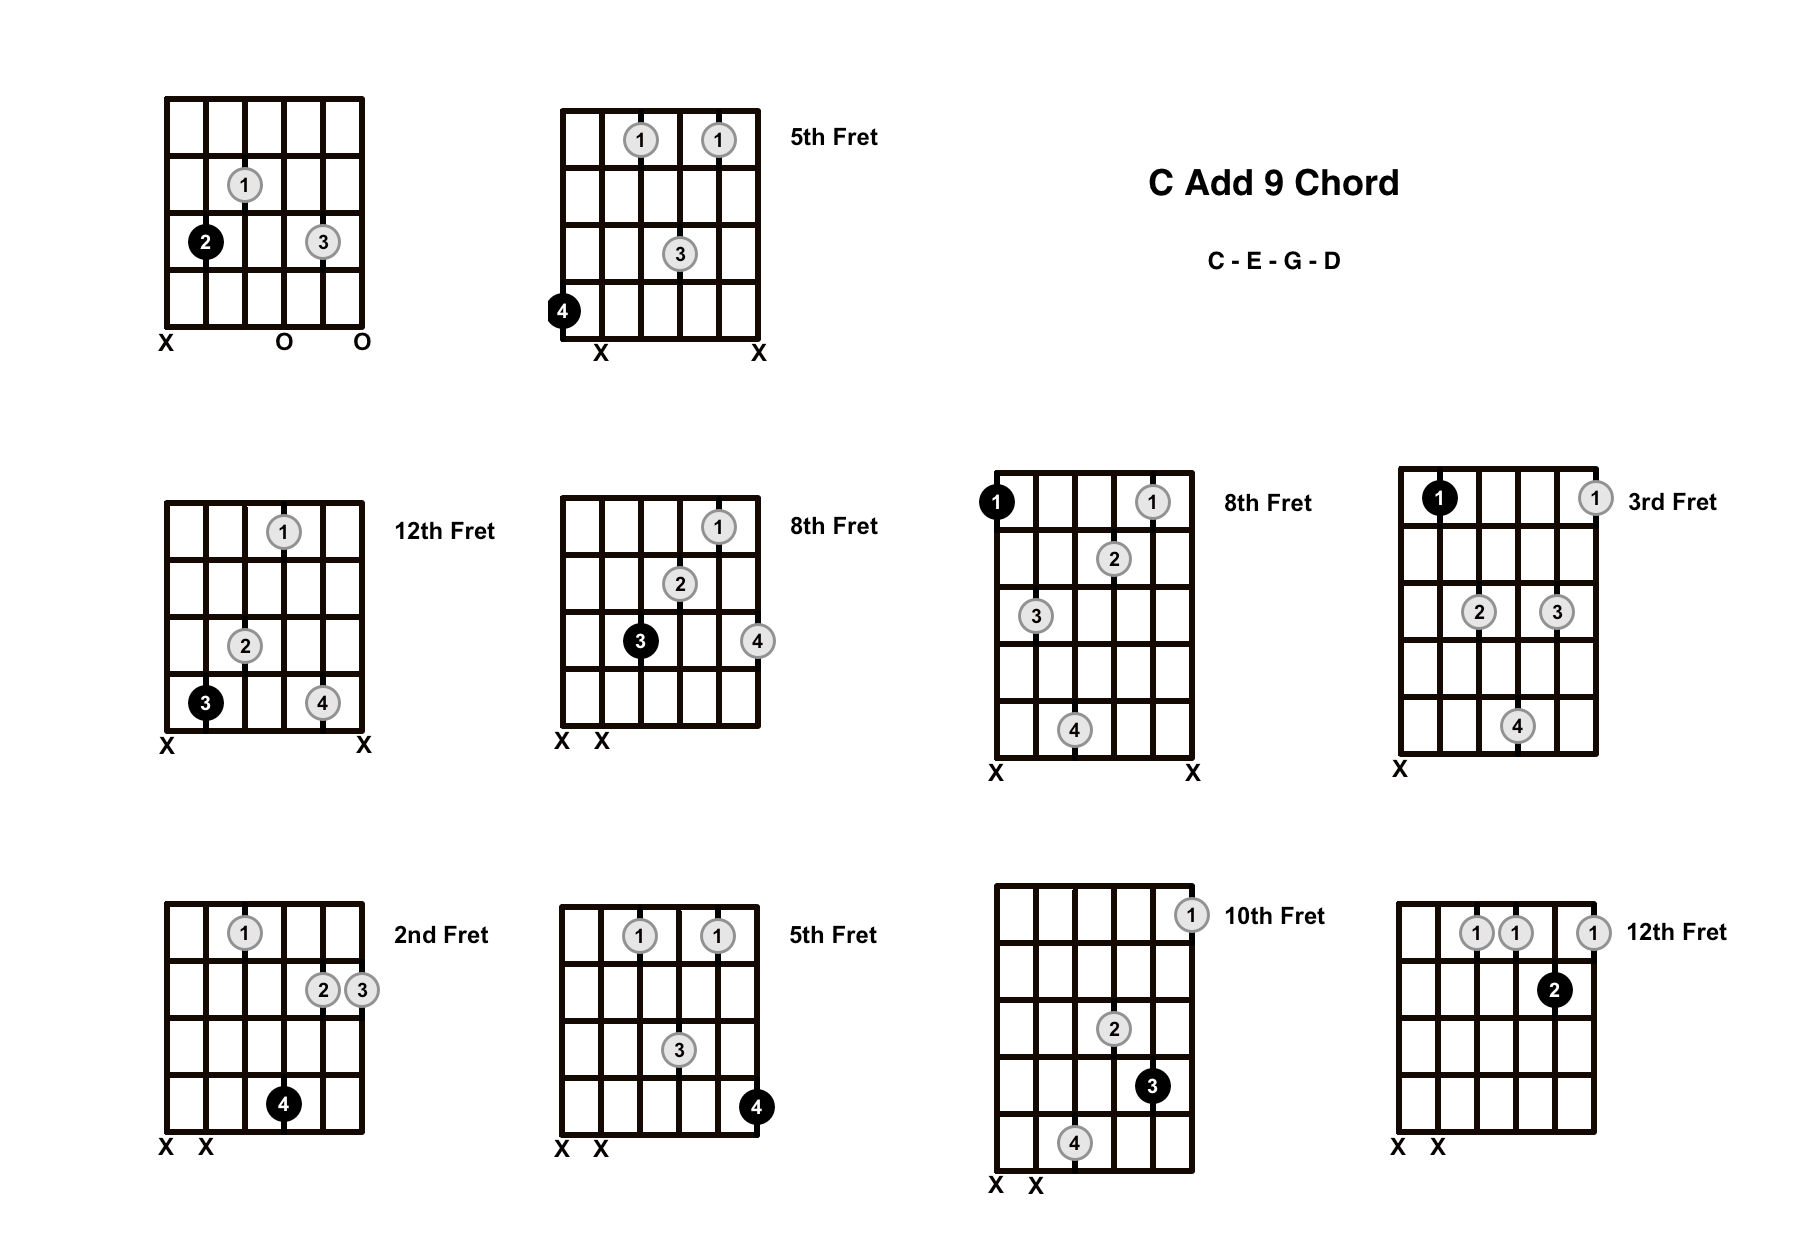 C Add 9 Chord On The Guitar (C Add 9/C Add 2) – Diagrams, Finger Positions and Theory